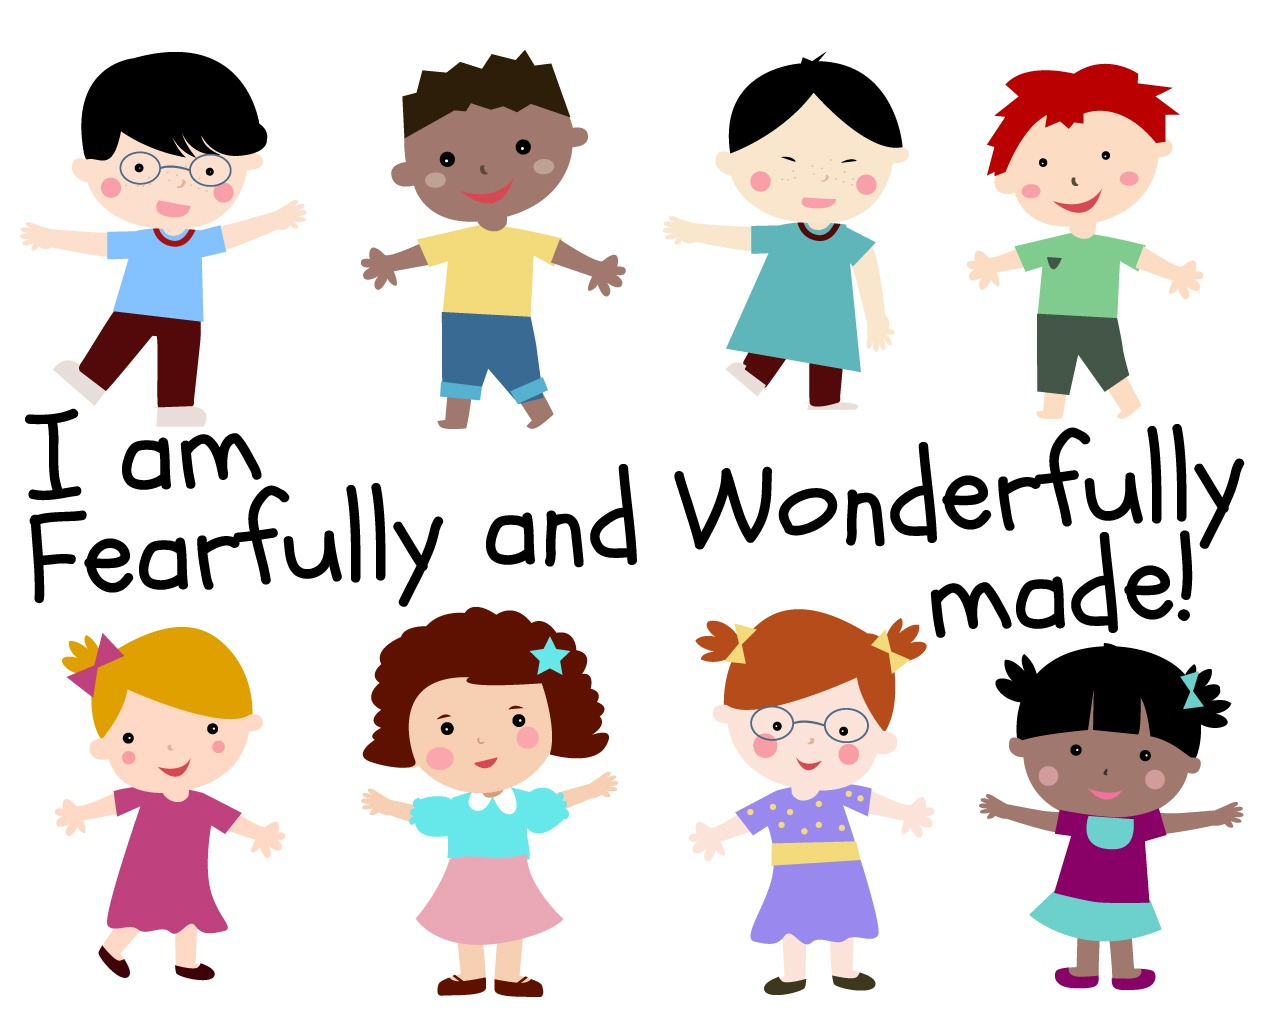 i am fearfully and wonderfully made  childrens lesson on end of school day clipart end of school clipart black and white